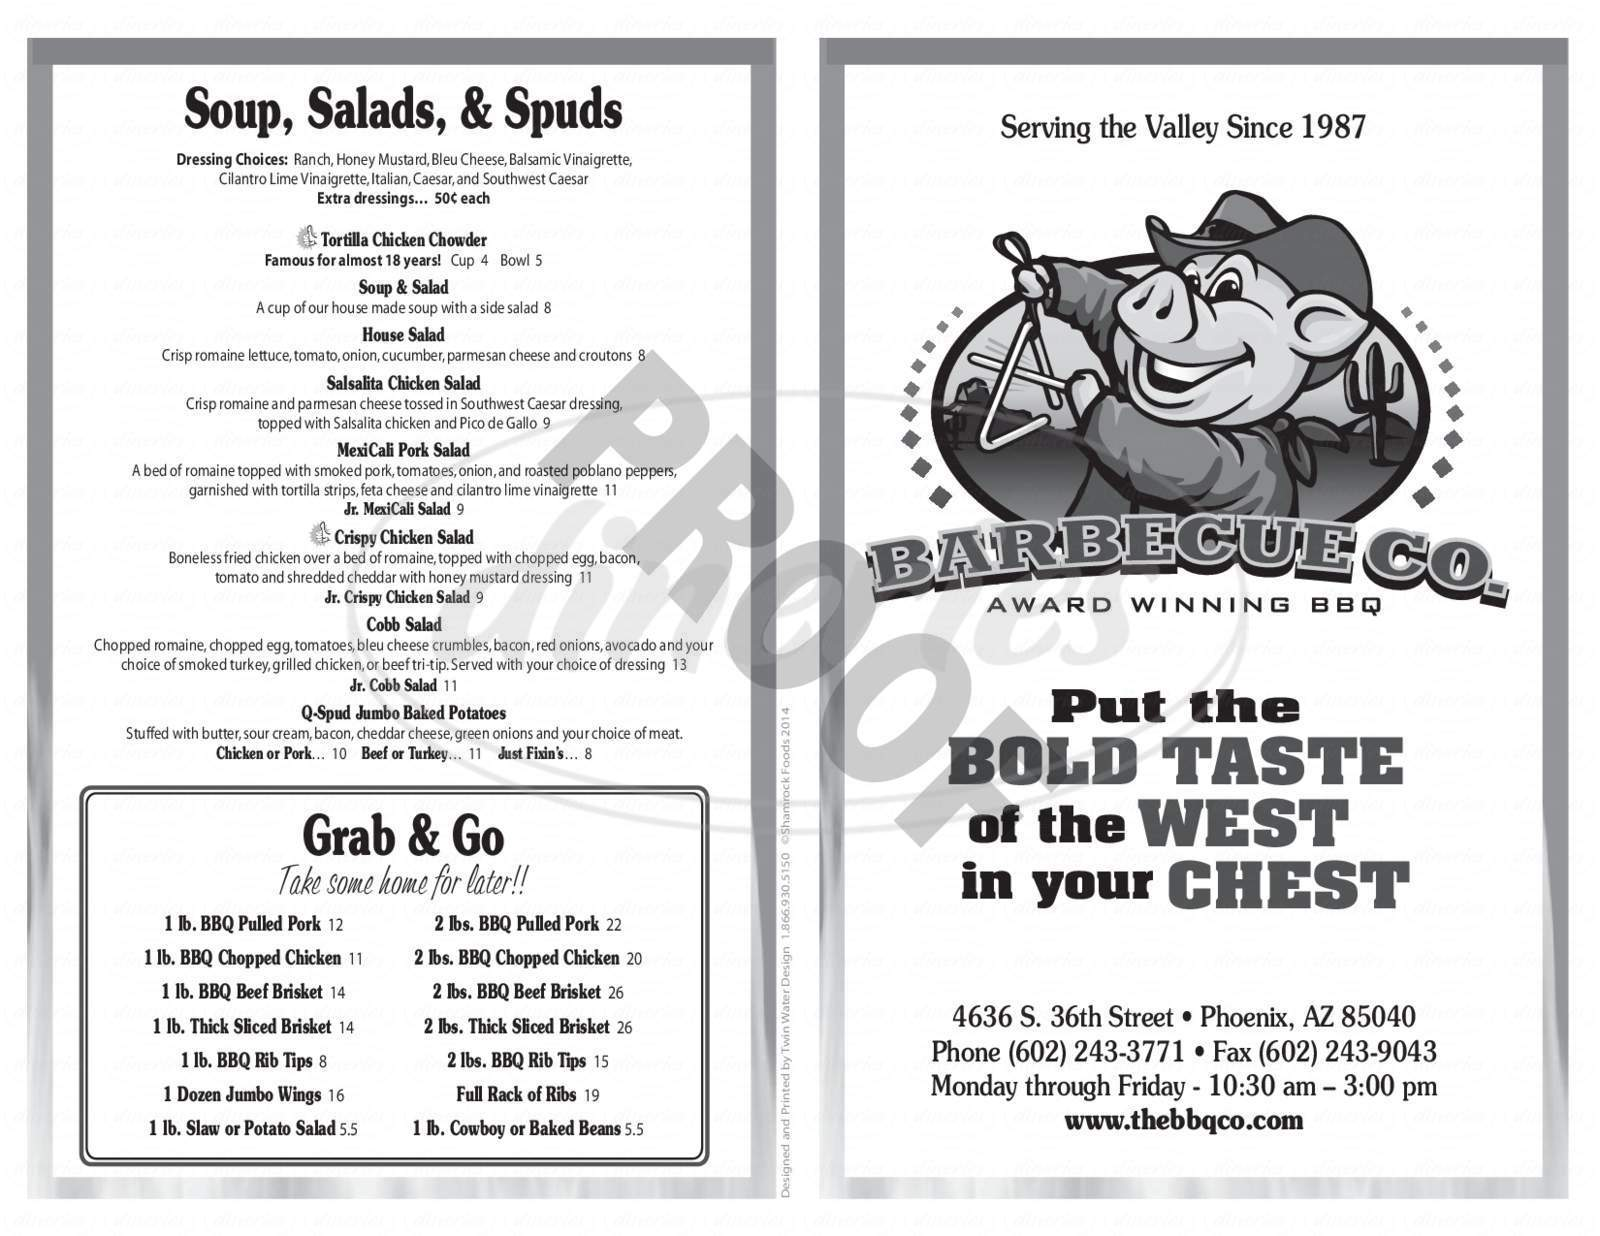 menu for The Barbecue Company